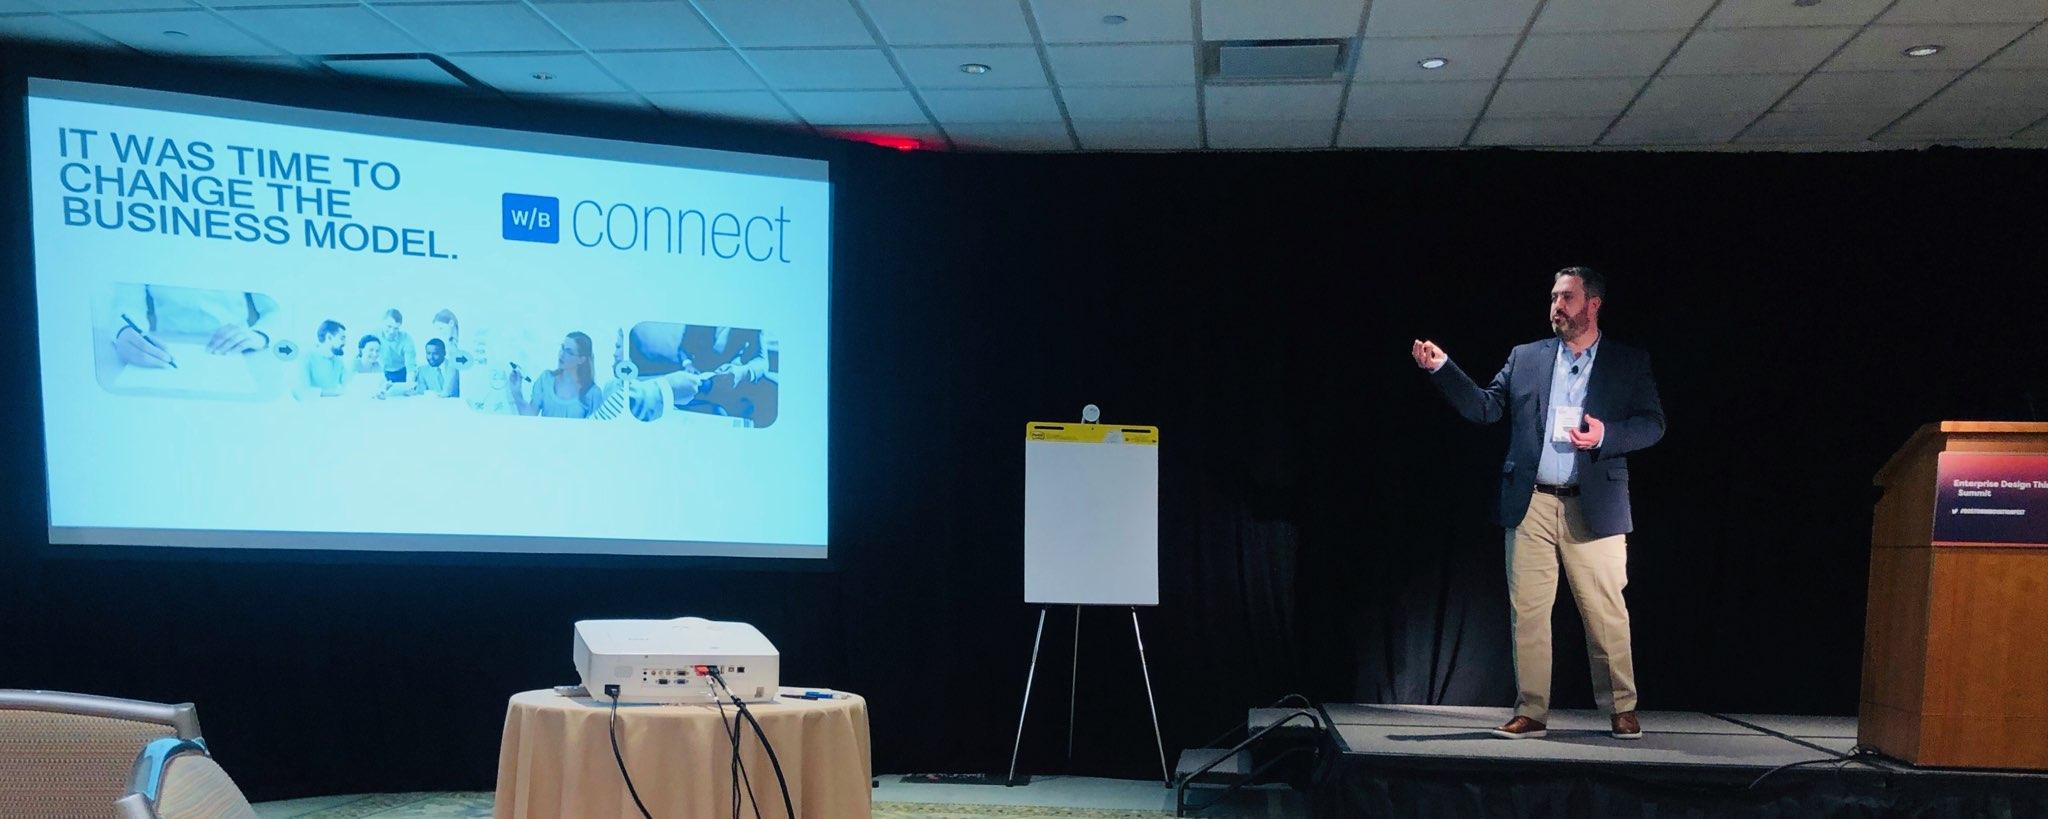 Image for Wilkes-Barre Connect Presentation at the FEI Innovation Conference in Boston